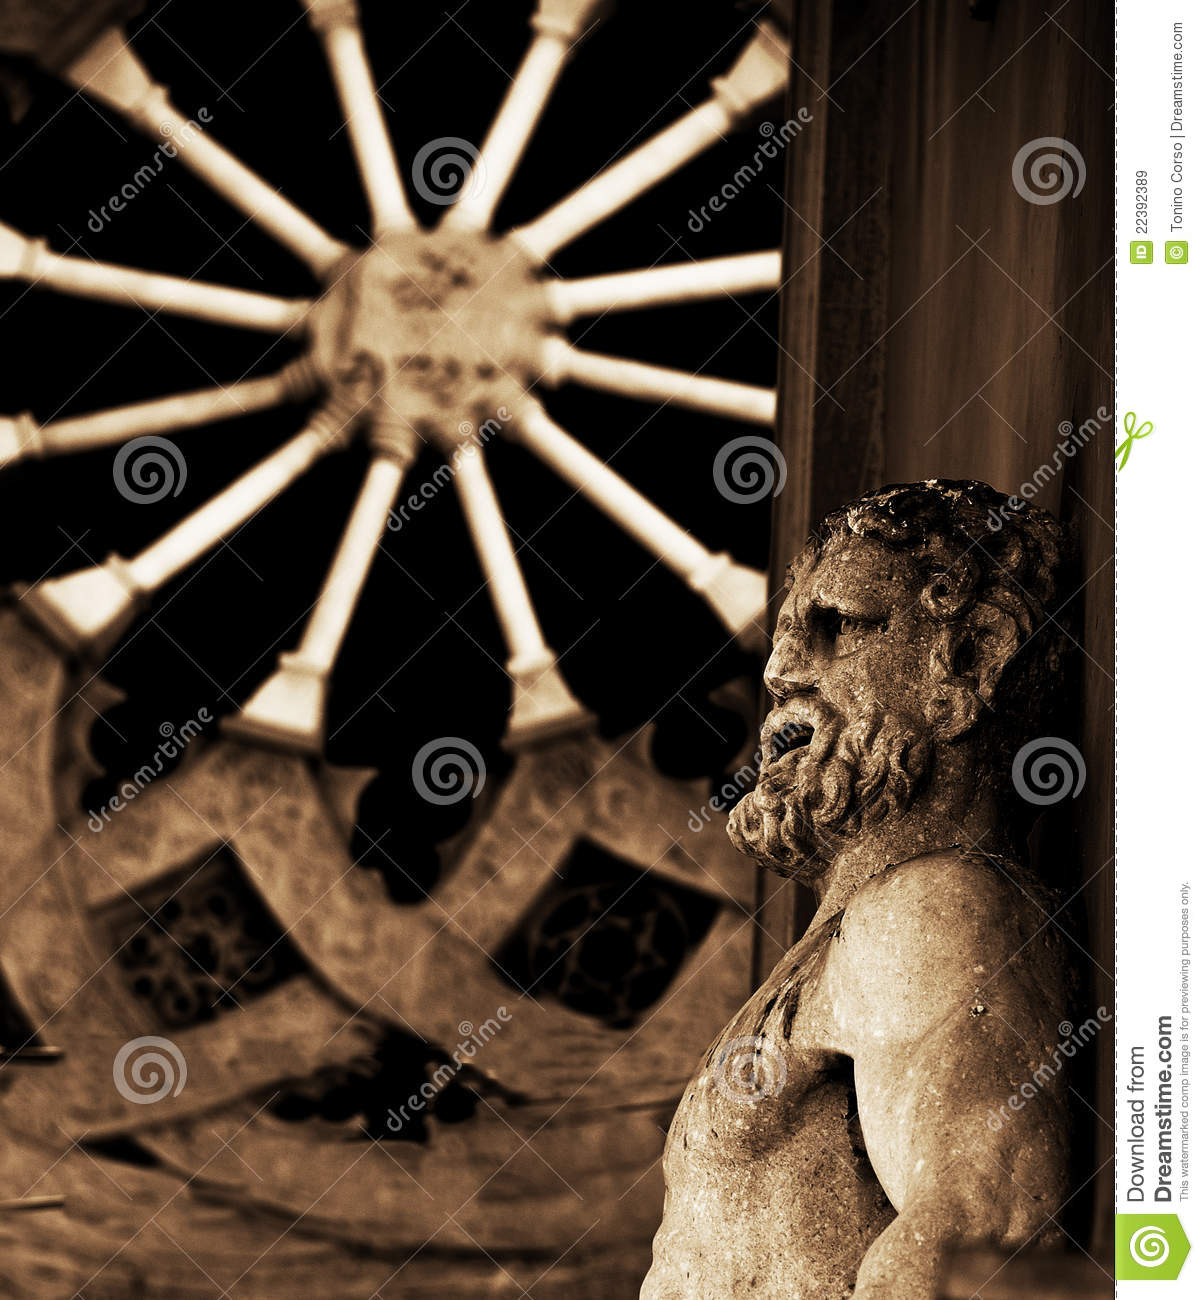 Saturn stock image  Image of sicily, prison, fortress - 22392389